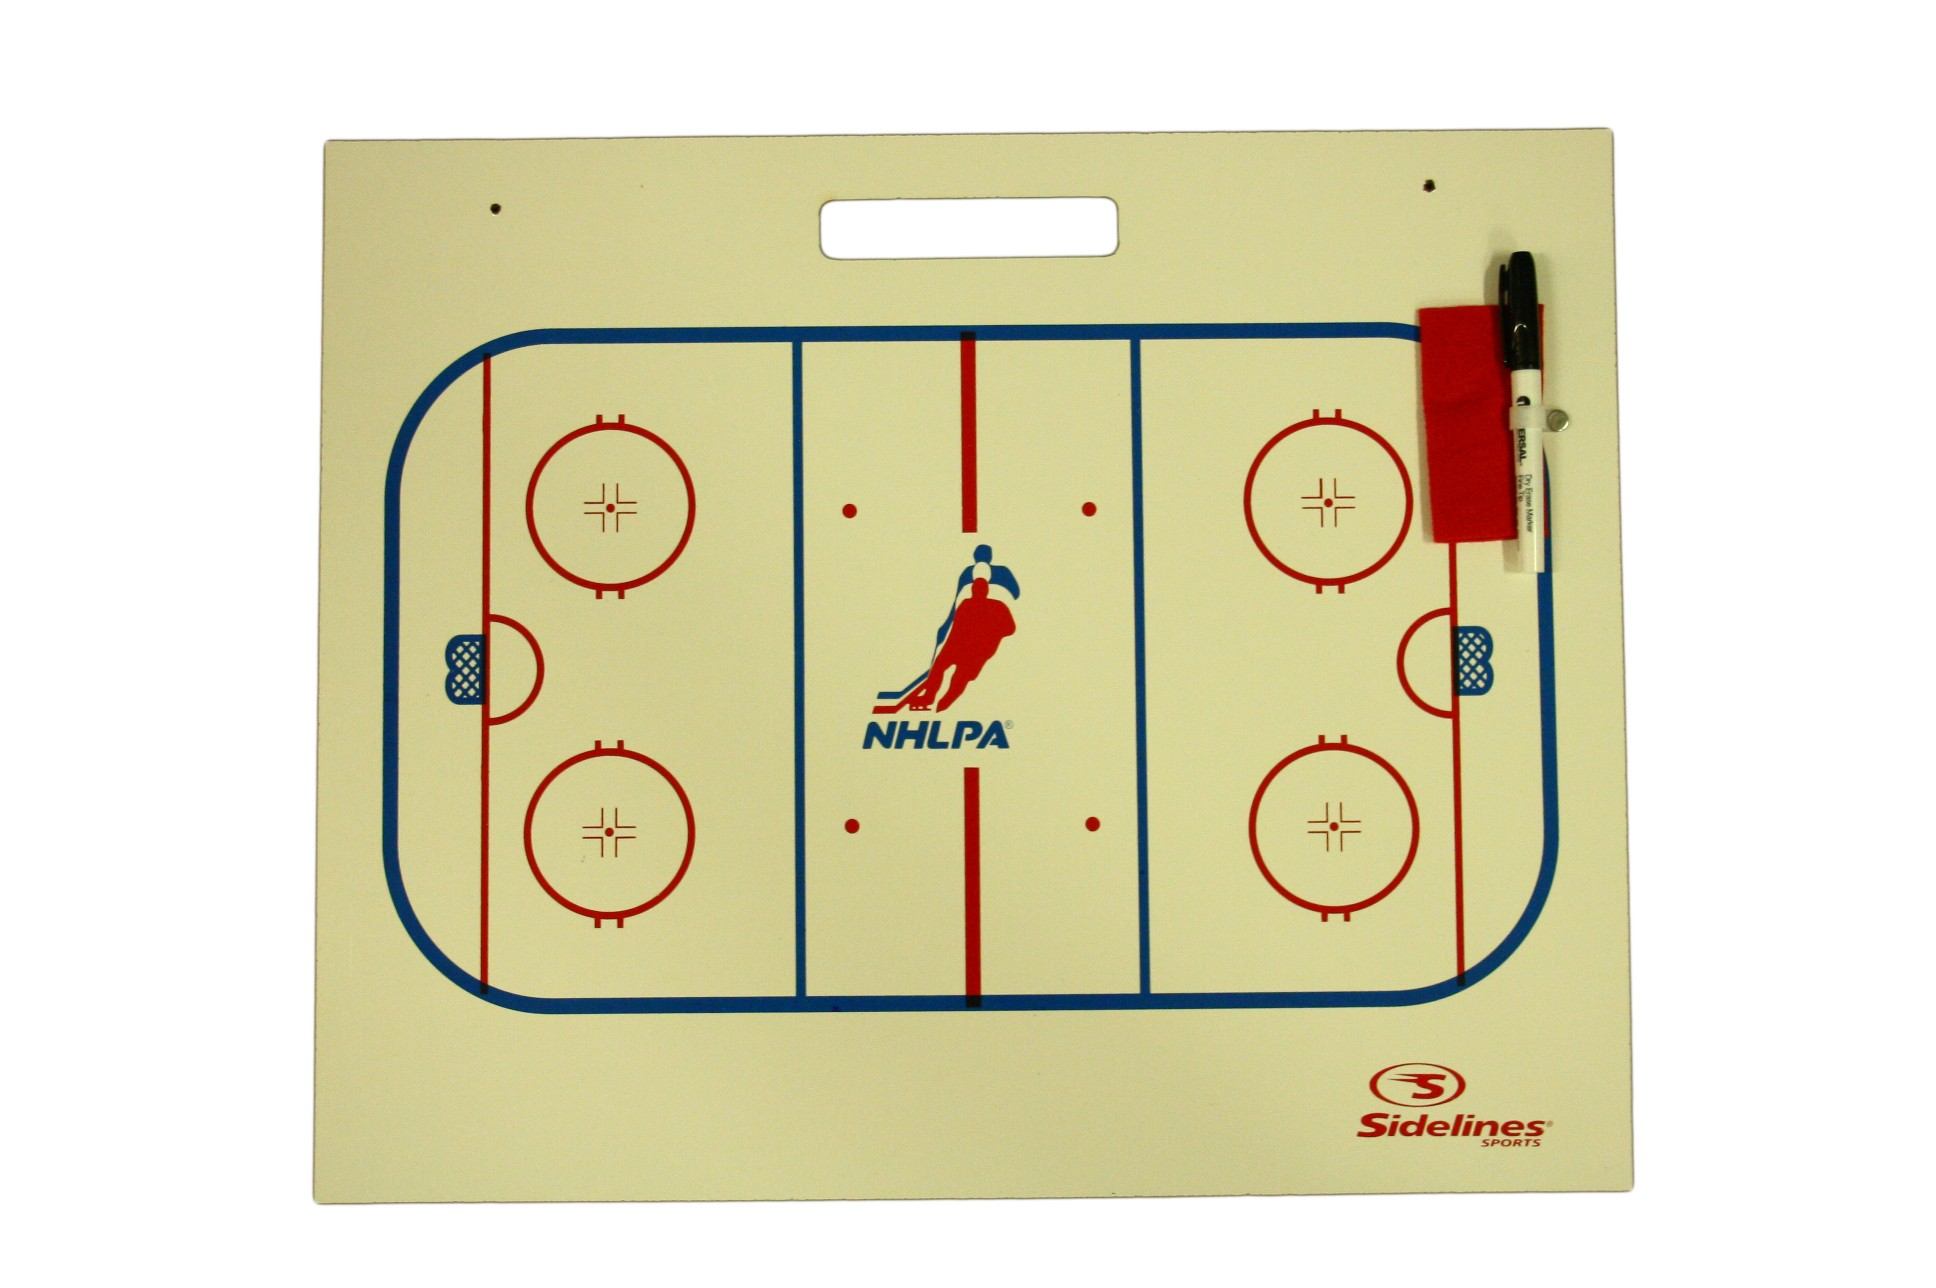 SIDELINES Sport NHLPA Coaching Training Bord on Wall